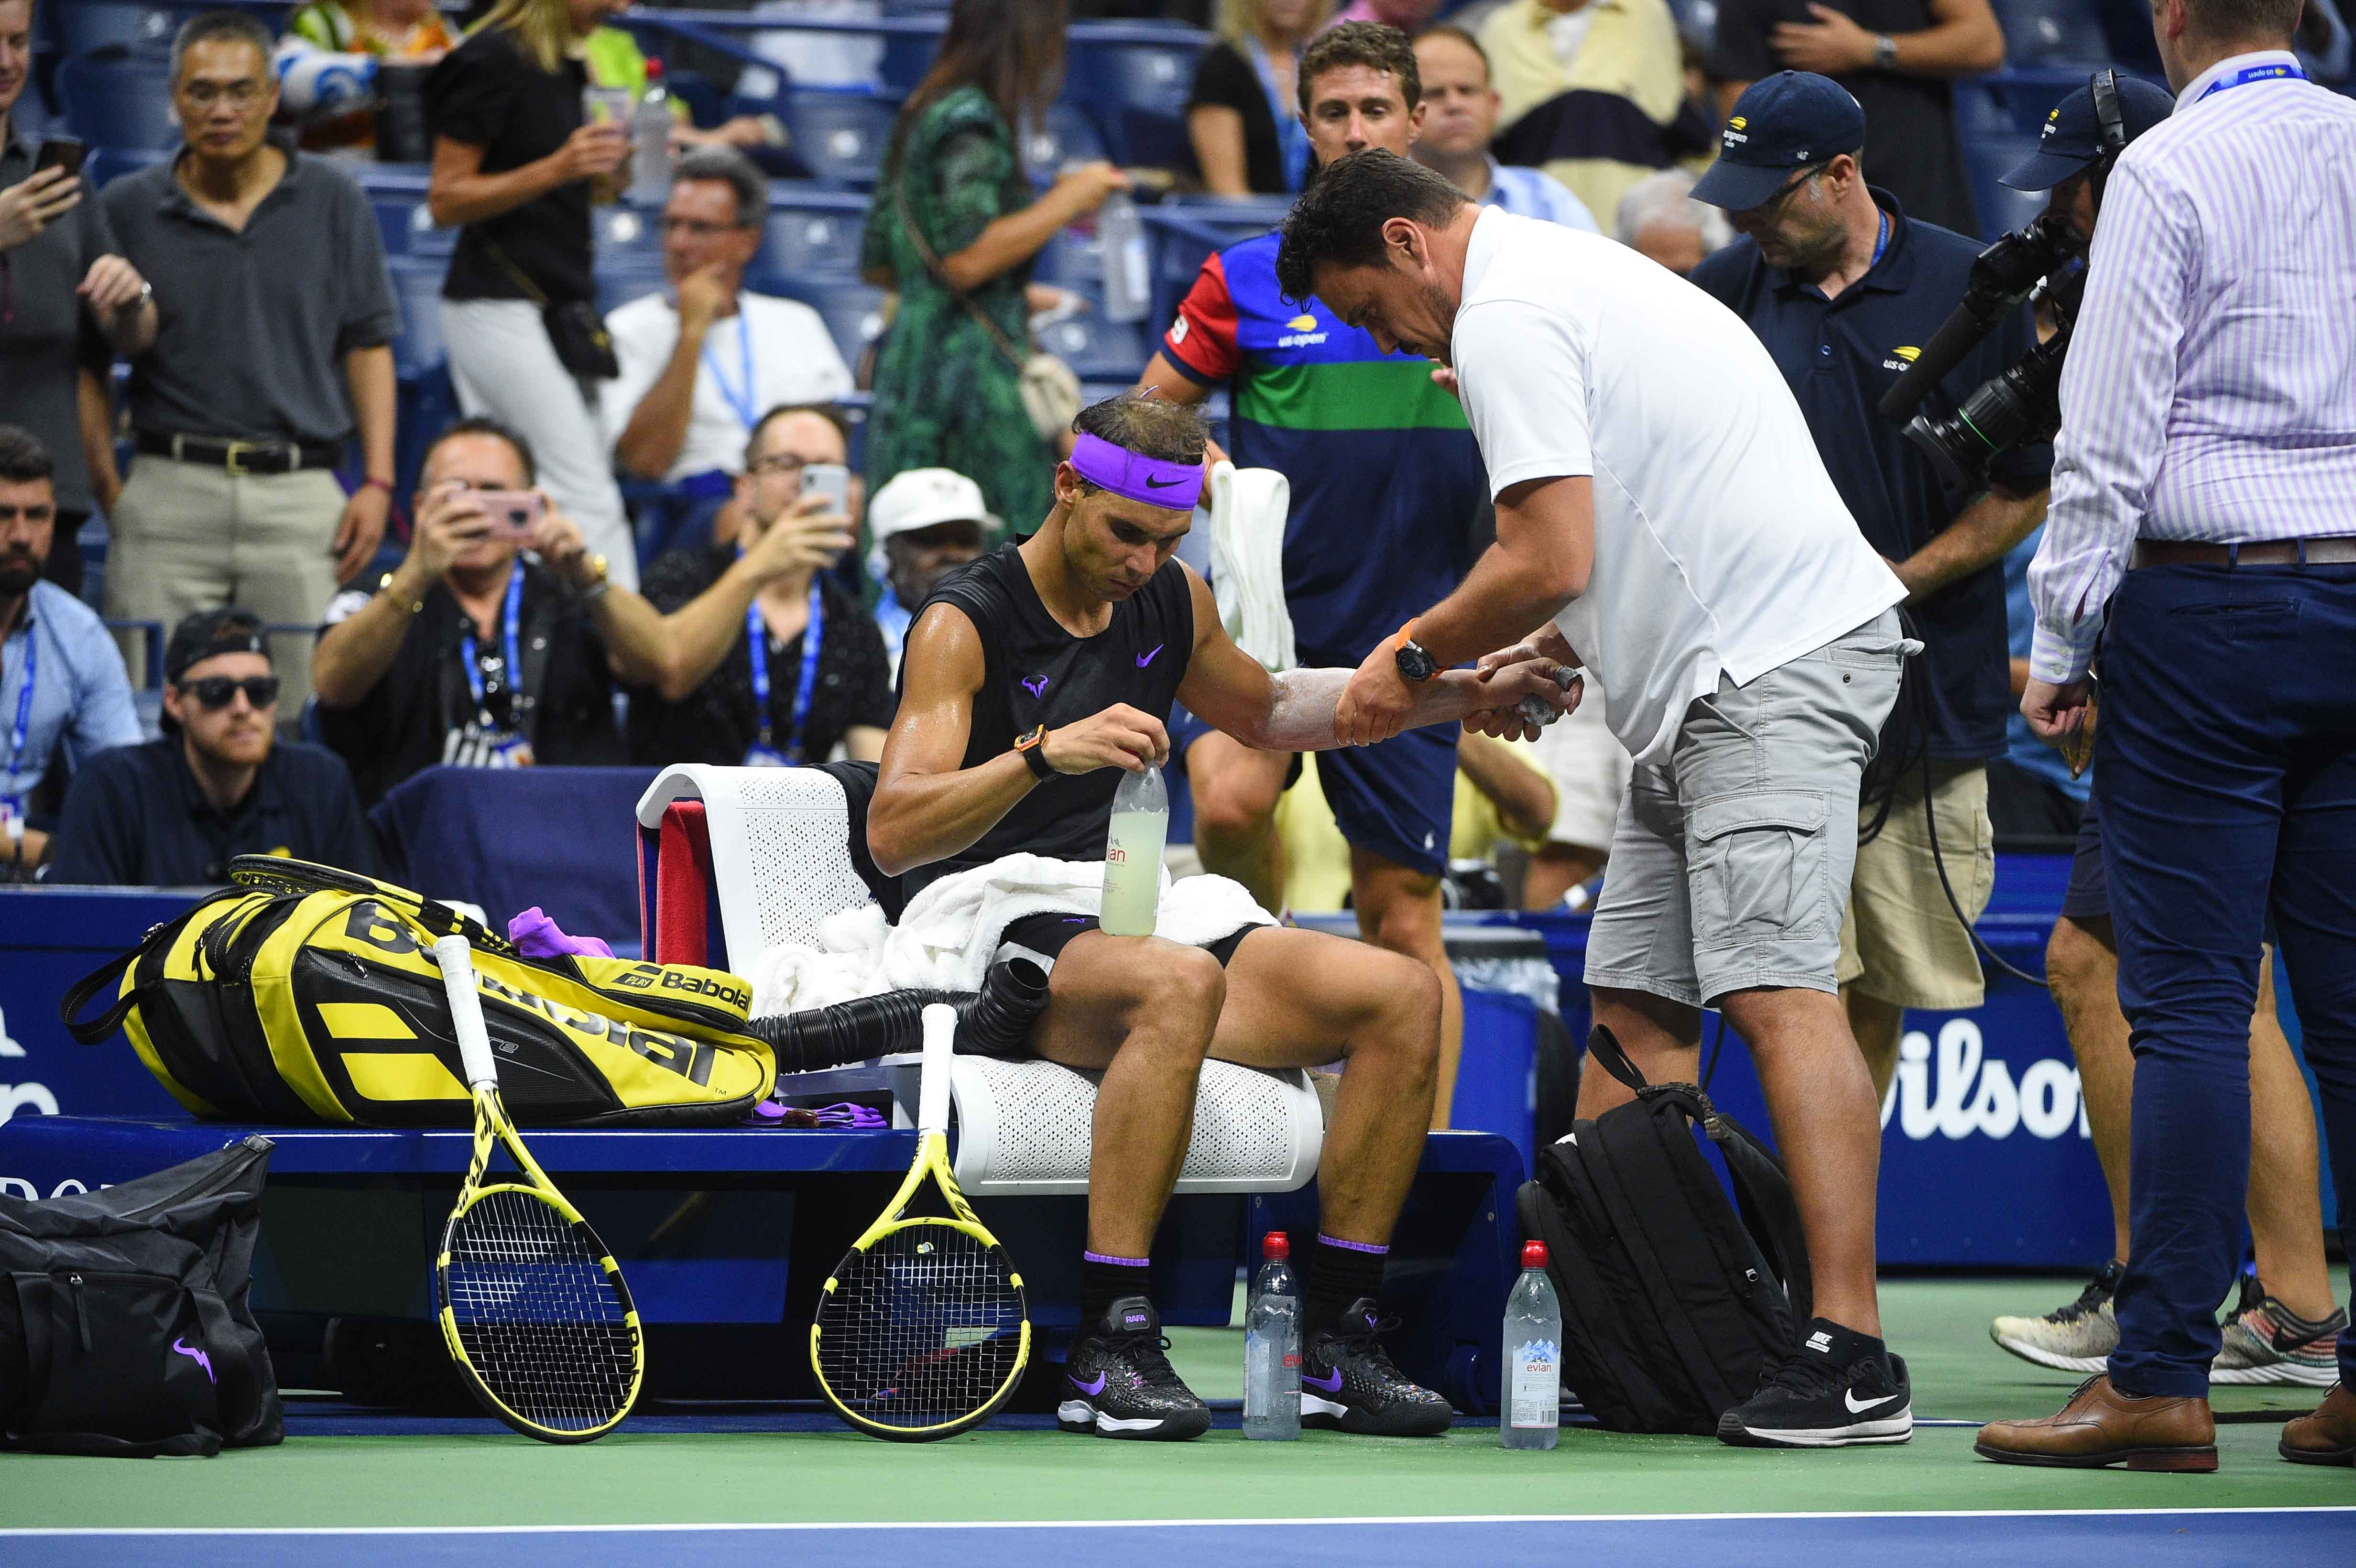 Rafael Nadal getting on court treatment during his quarterfinal at the 2019 US Open